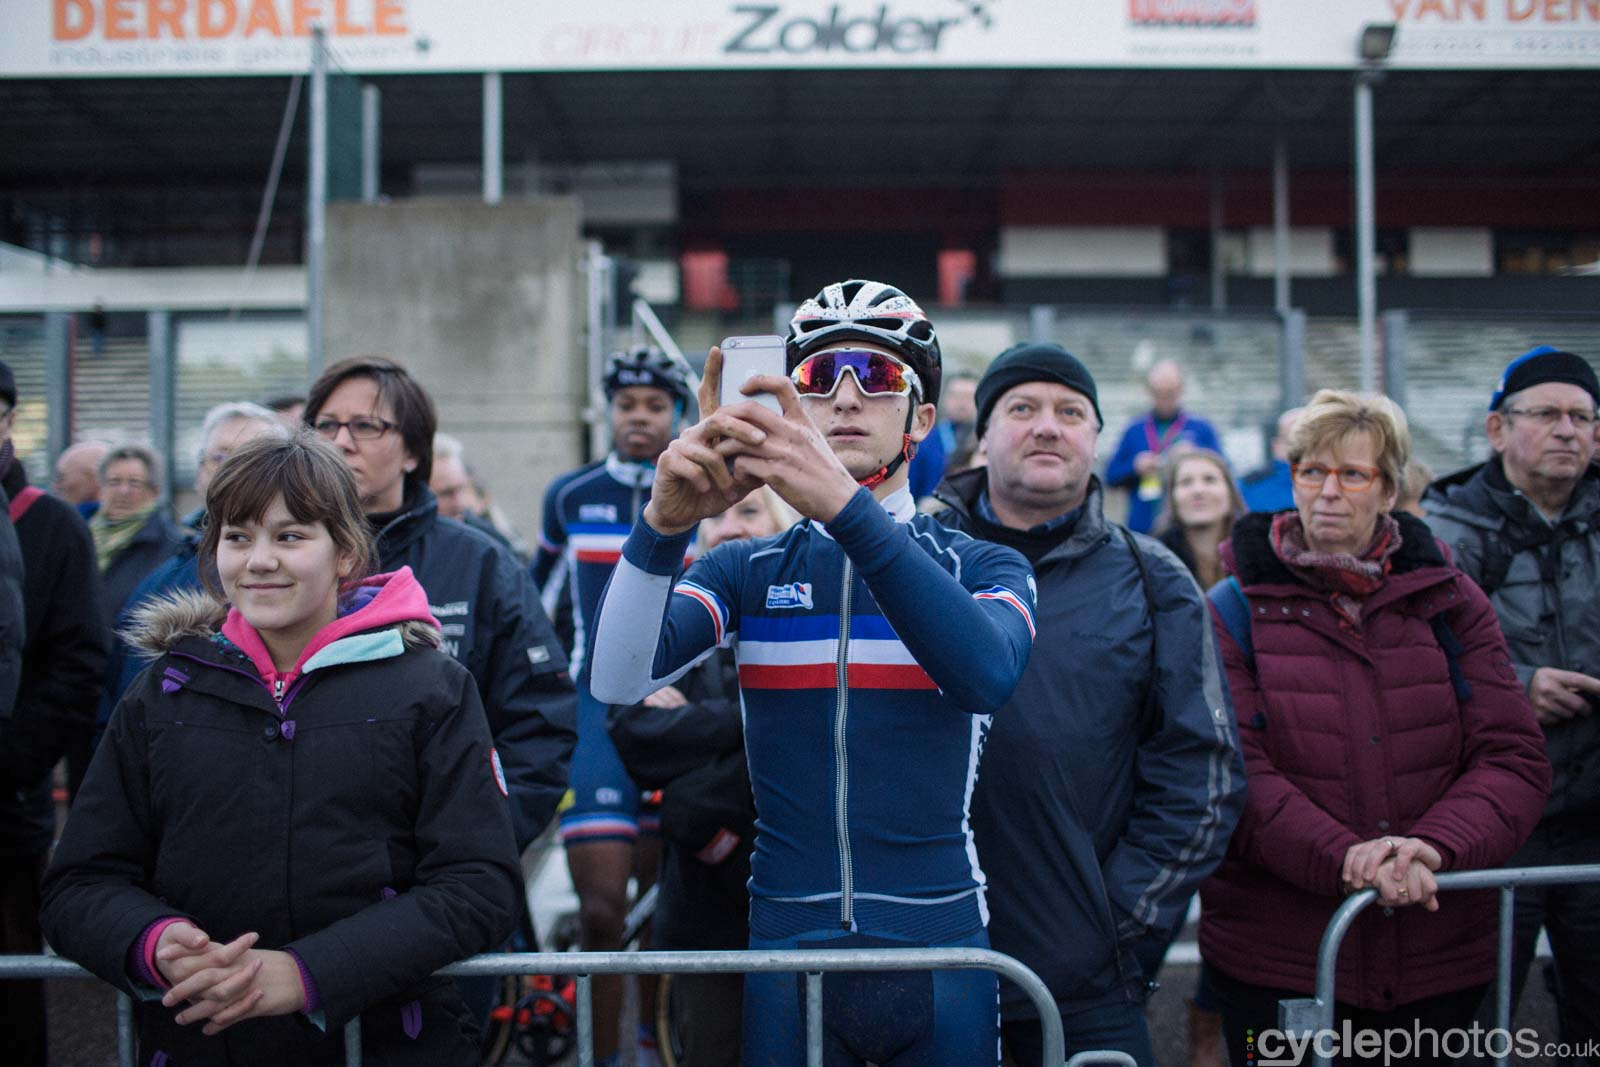 2015-cyclephotos-cyclocross-zolder-105517